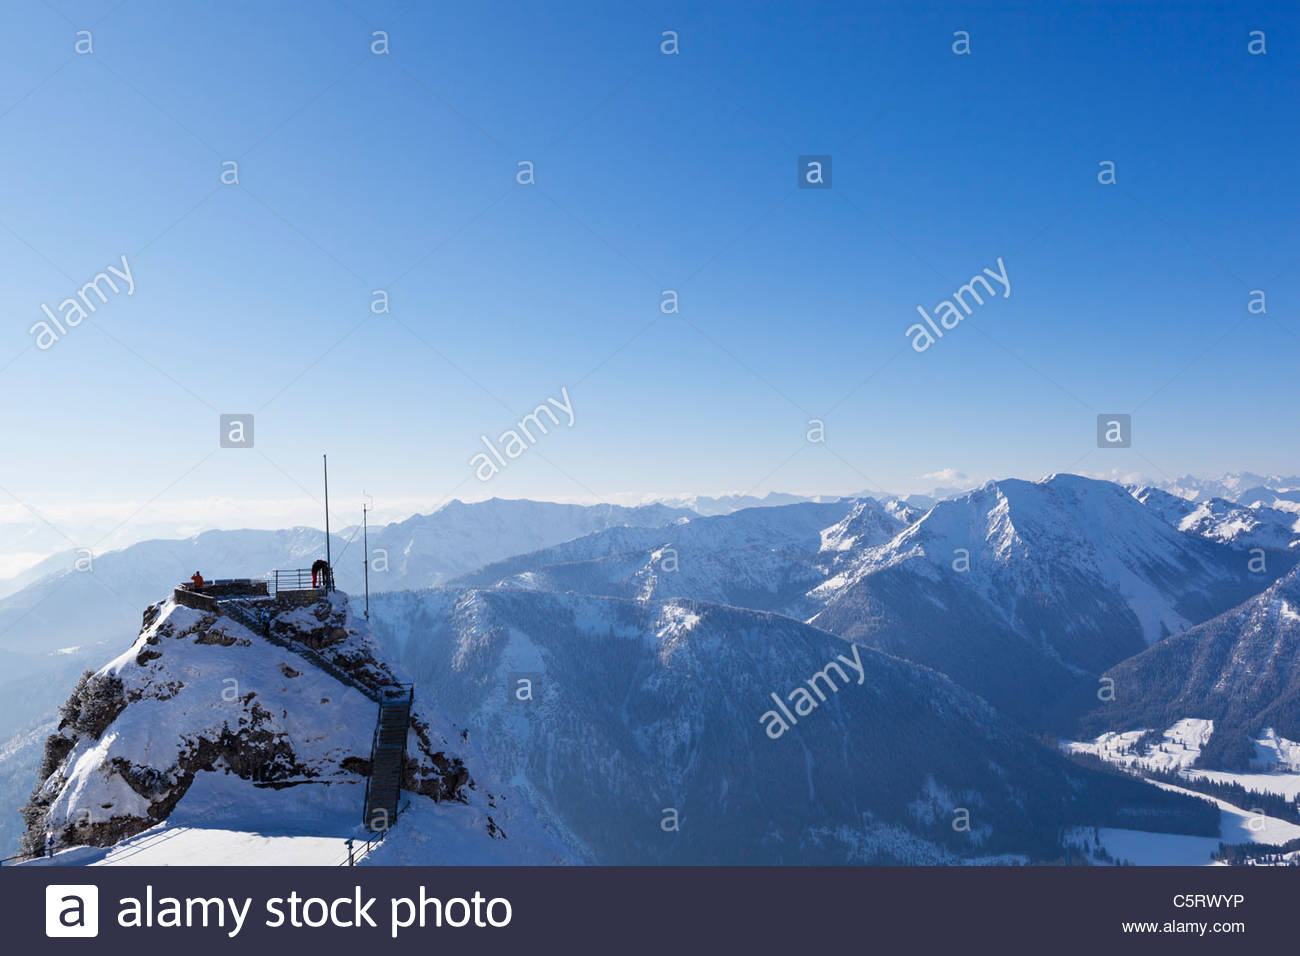 Europe, Germany, Bavaria, Upper Bavaria, Bayrischzell, View of Gacherblick and Bavarian Alps - Stock Image